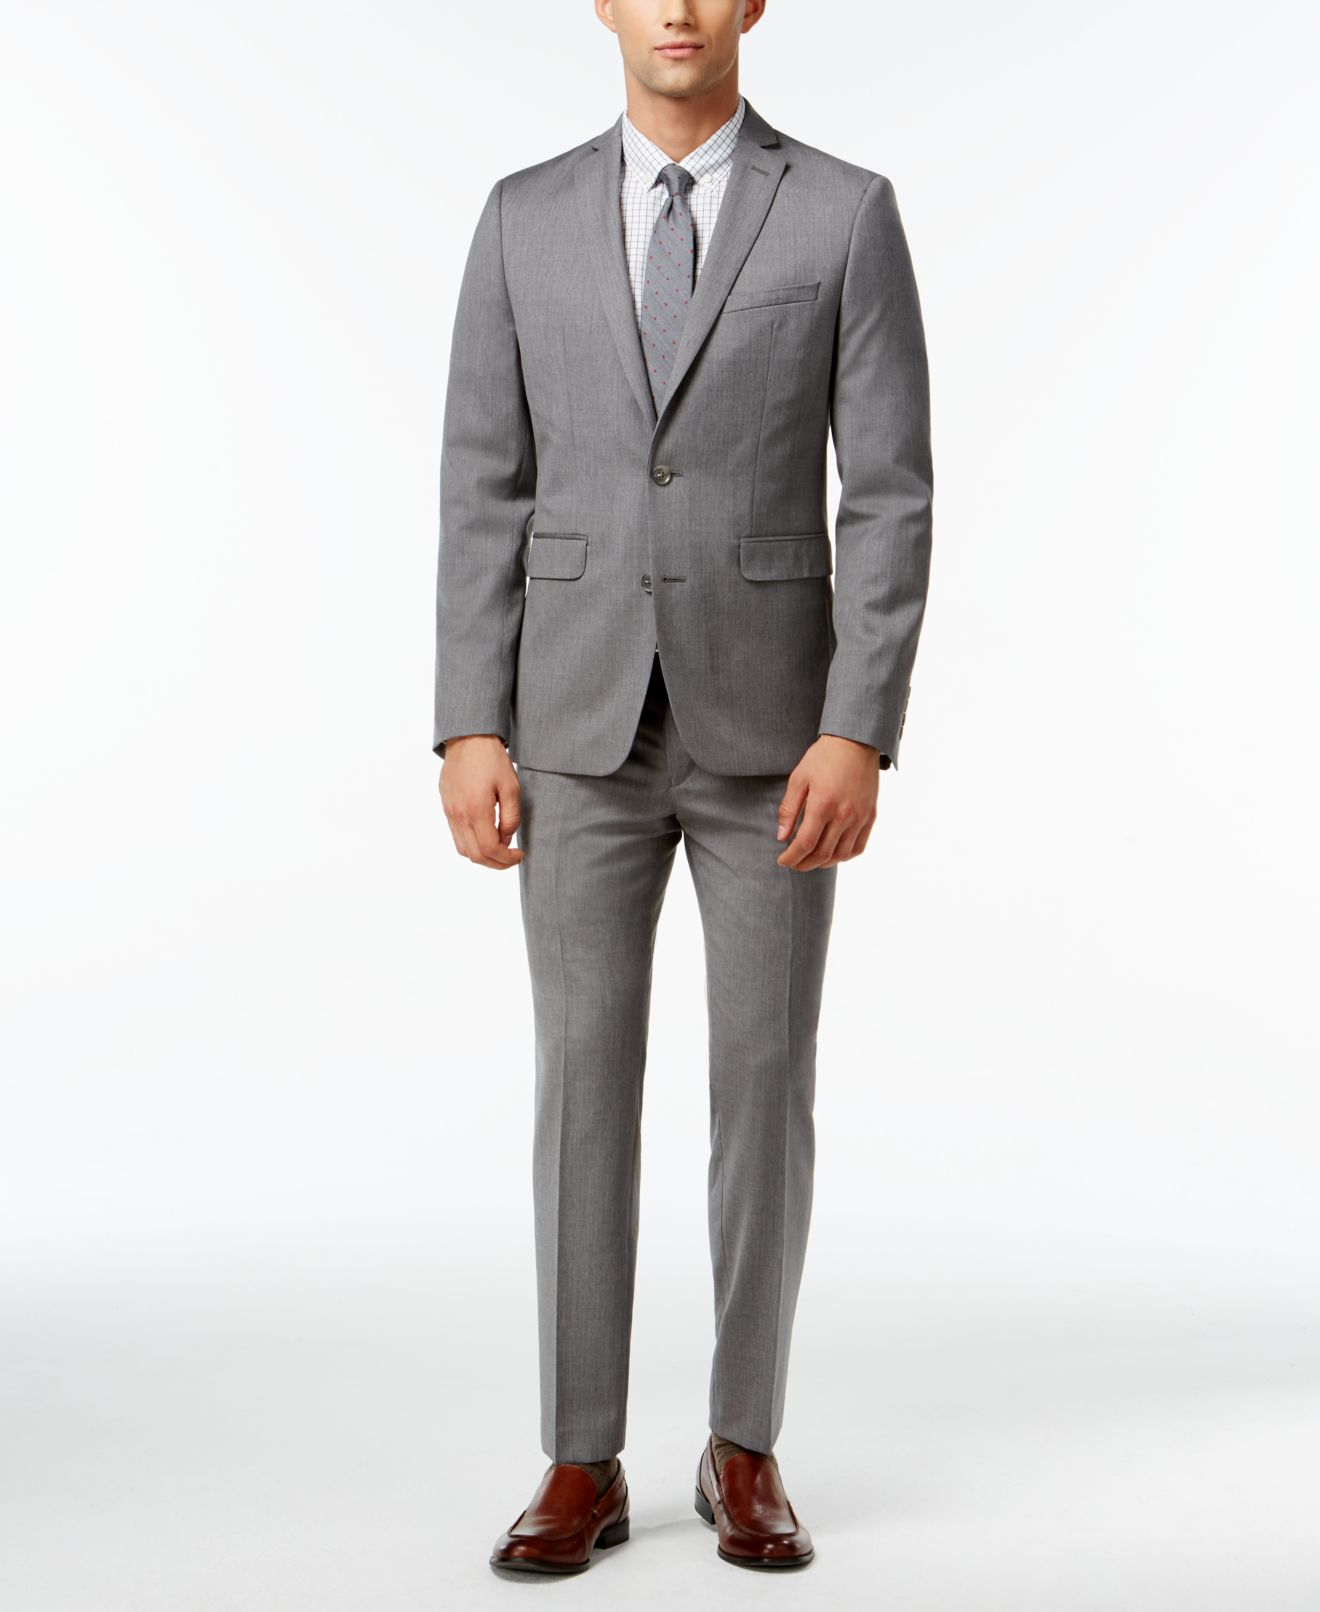 Bar III Light Grey Extra Slim-Fit Suit Separates - Suits & Suit ...